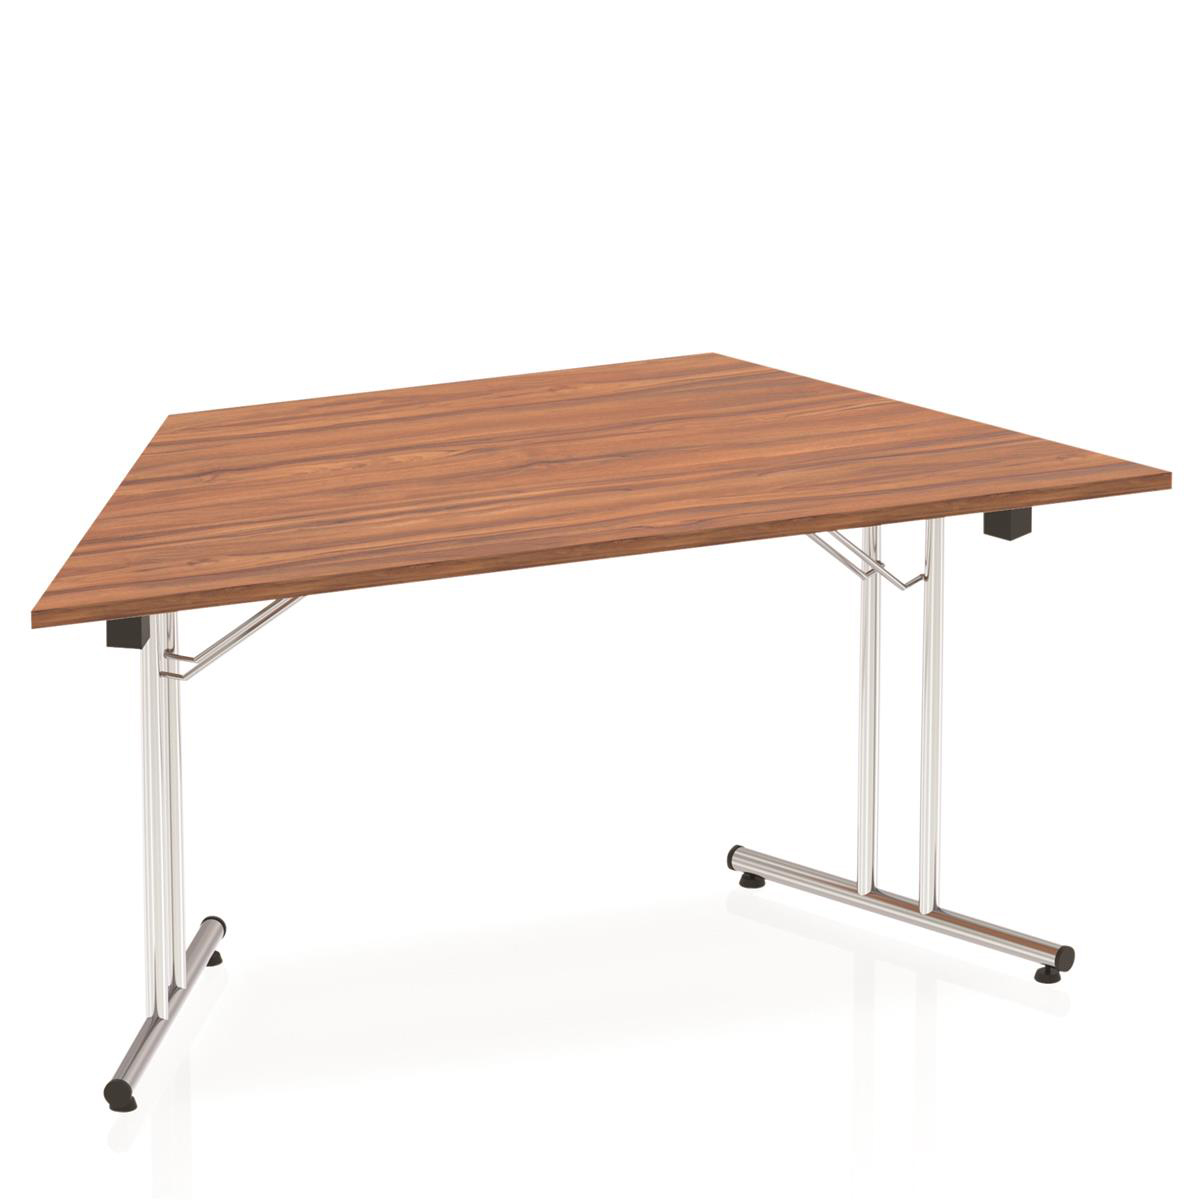 Sonix Trapezoidal Chrome Leg Folding Meeting Table 1600x800mm Walnut Ref I000702